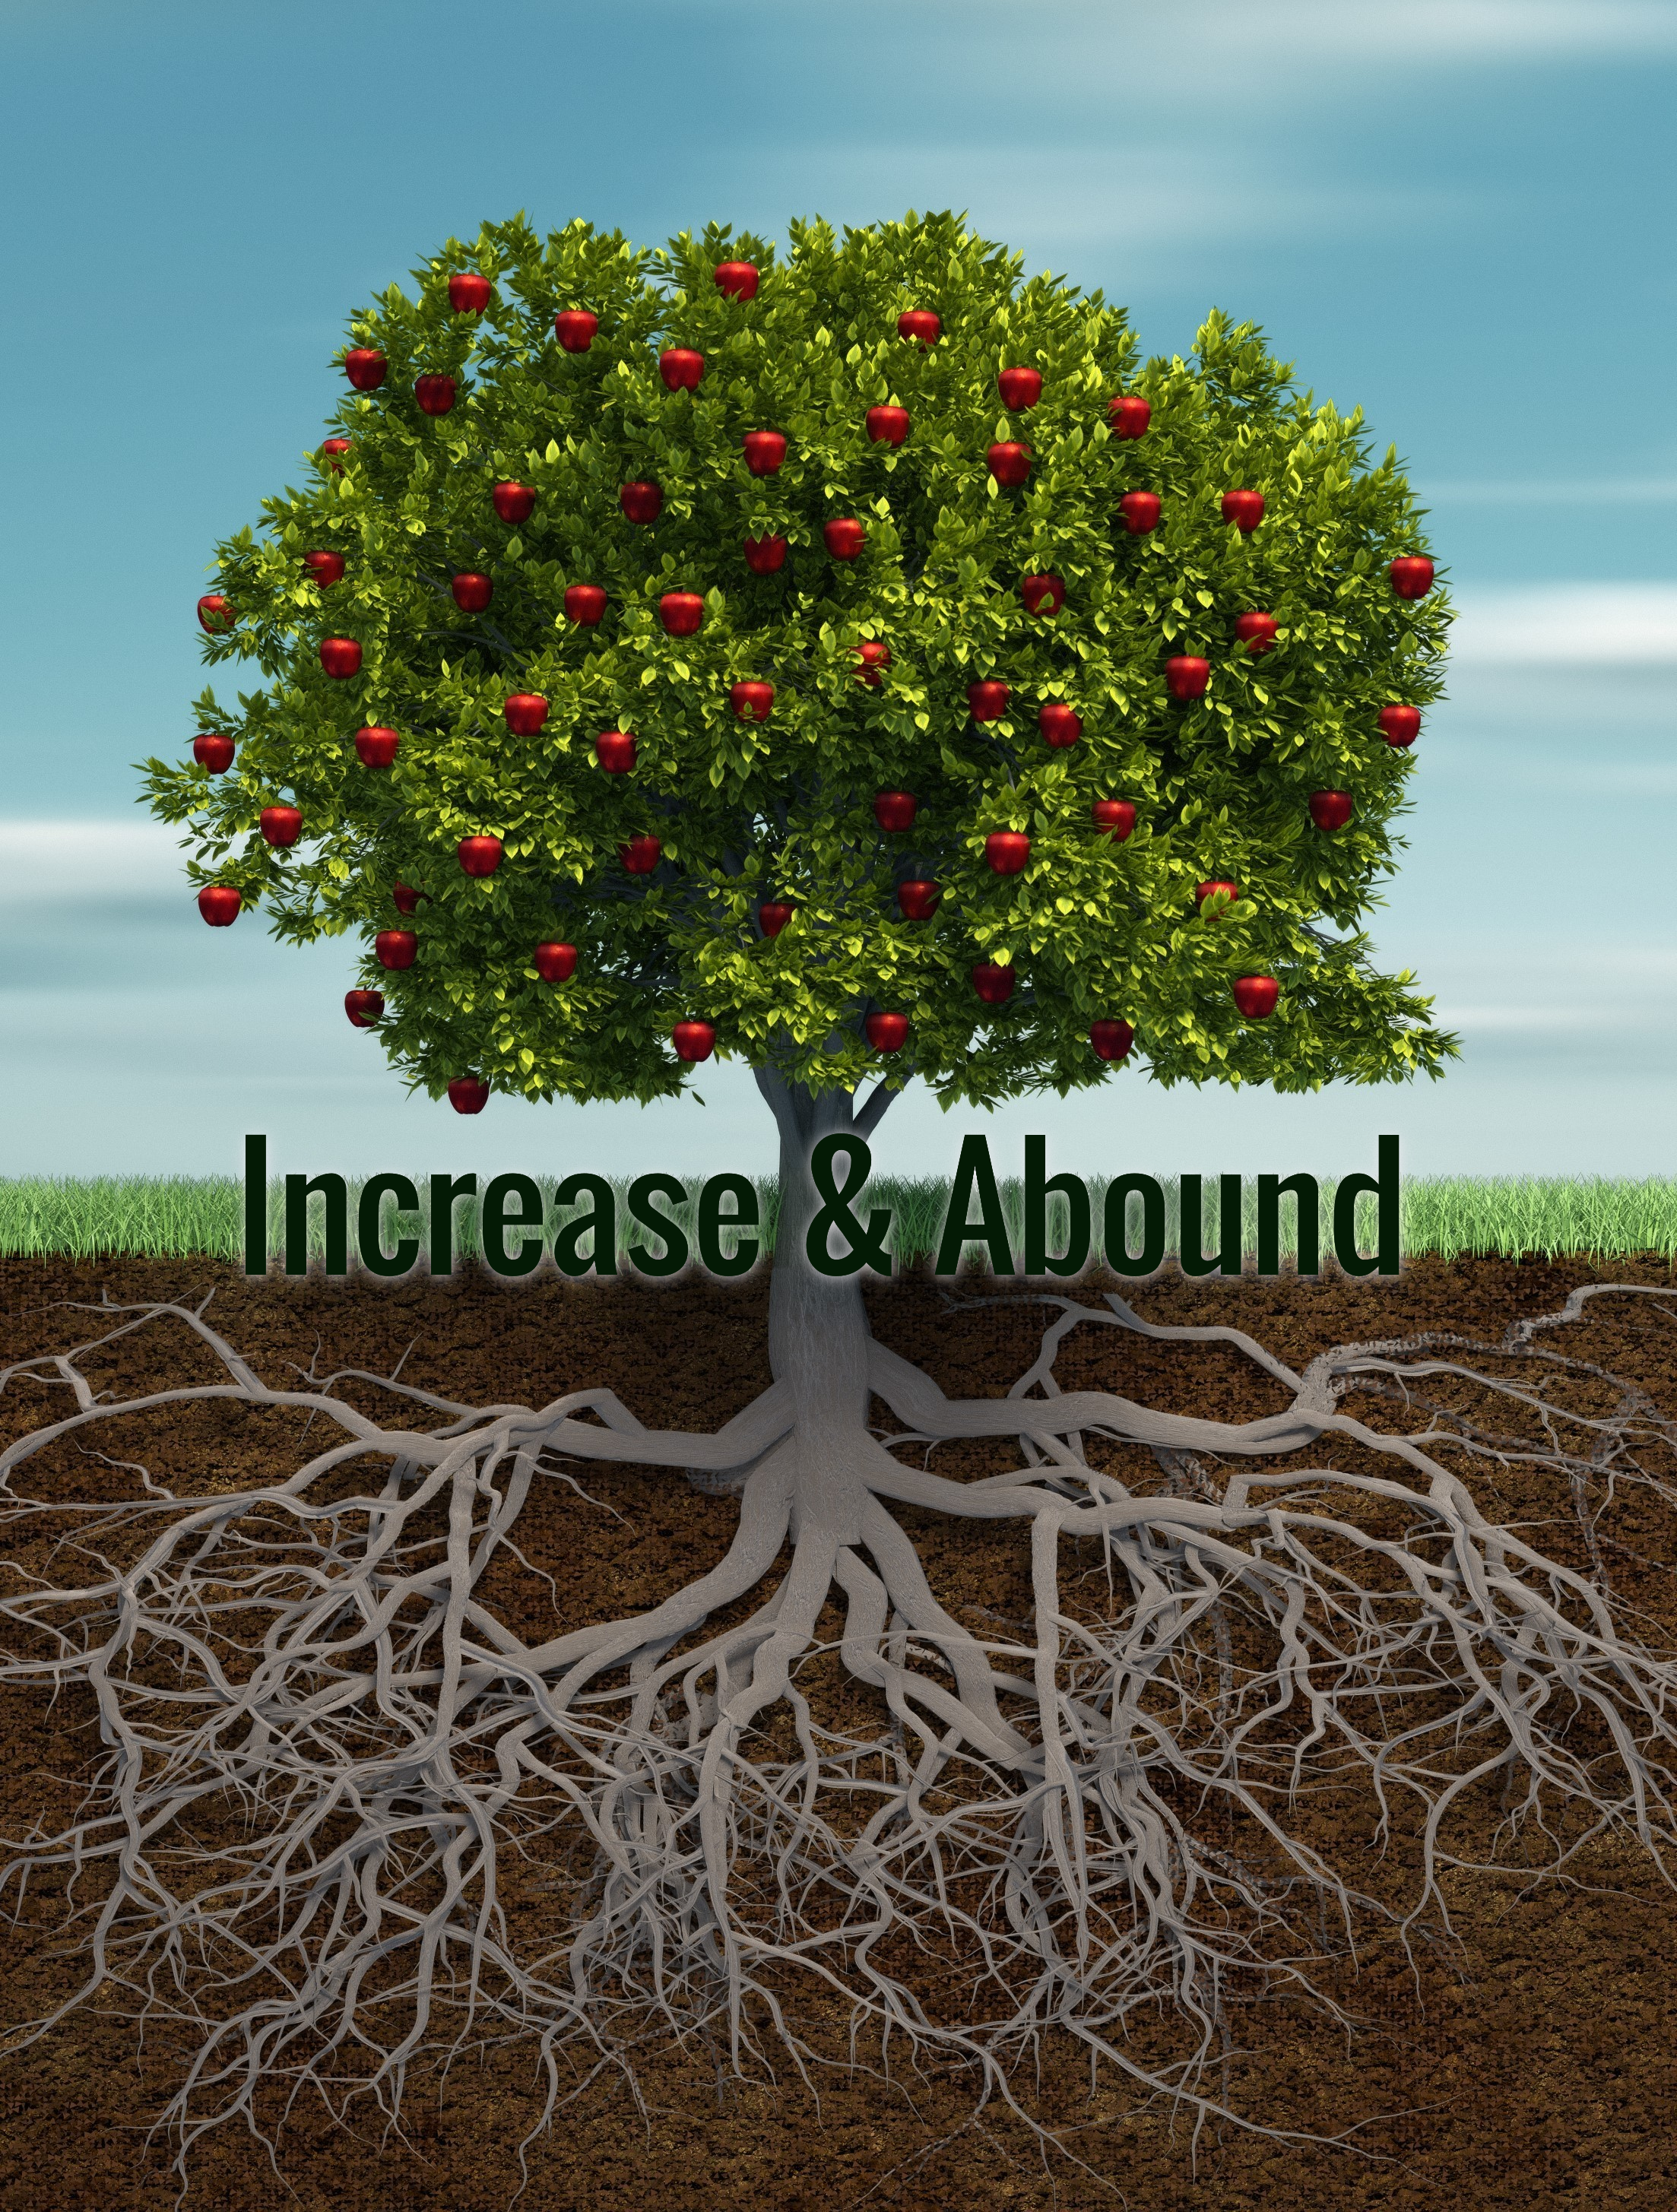 Increase and Abound